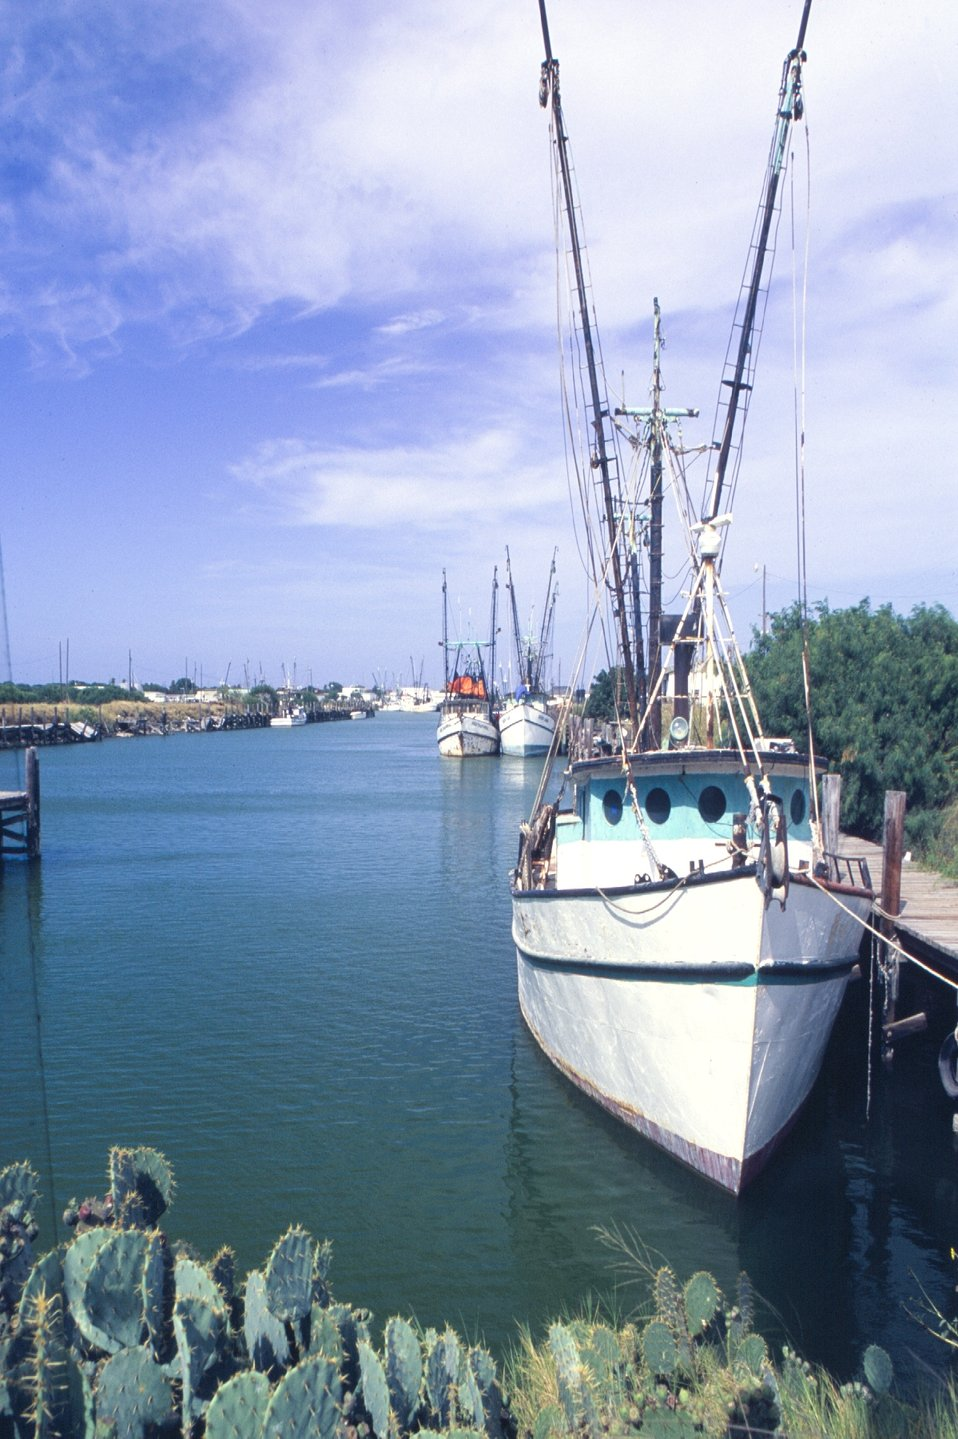 A view of the harbor at Port Isabel, Texas.  Cactus and shrimp boats, an incongruous combination.